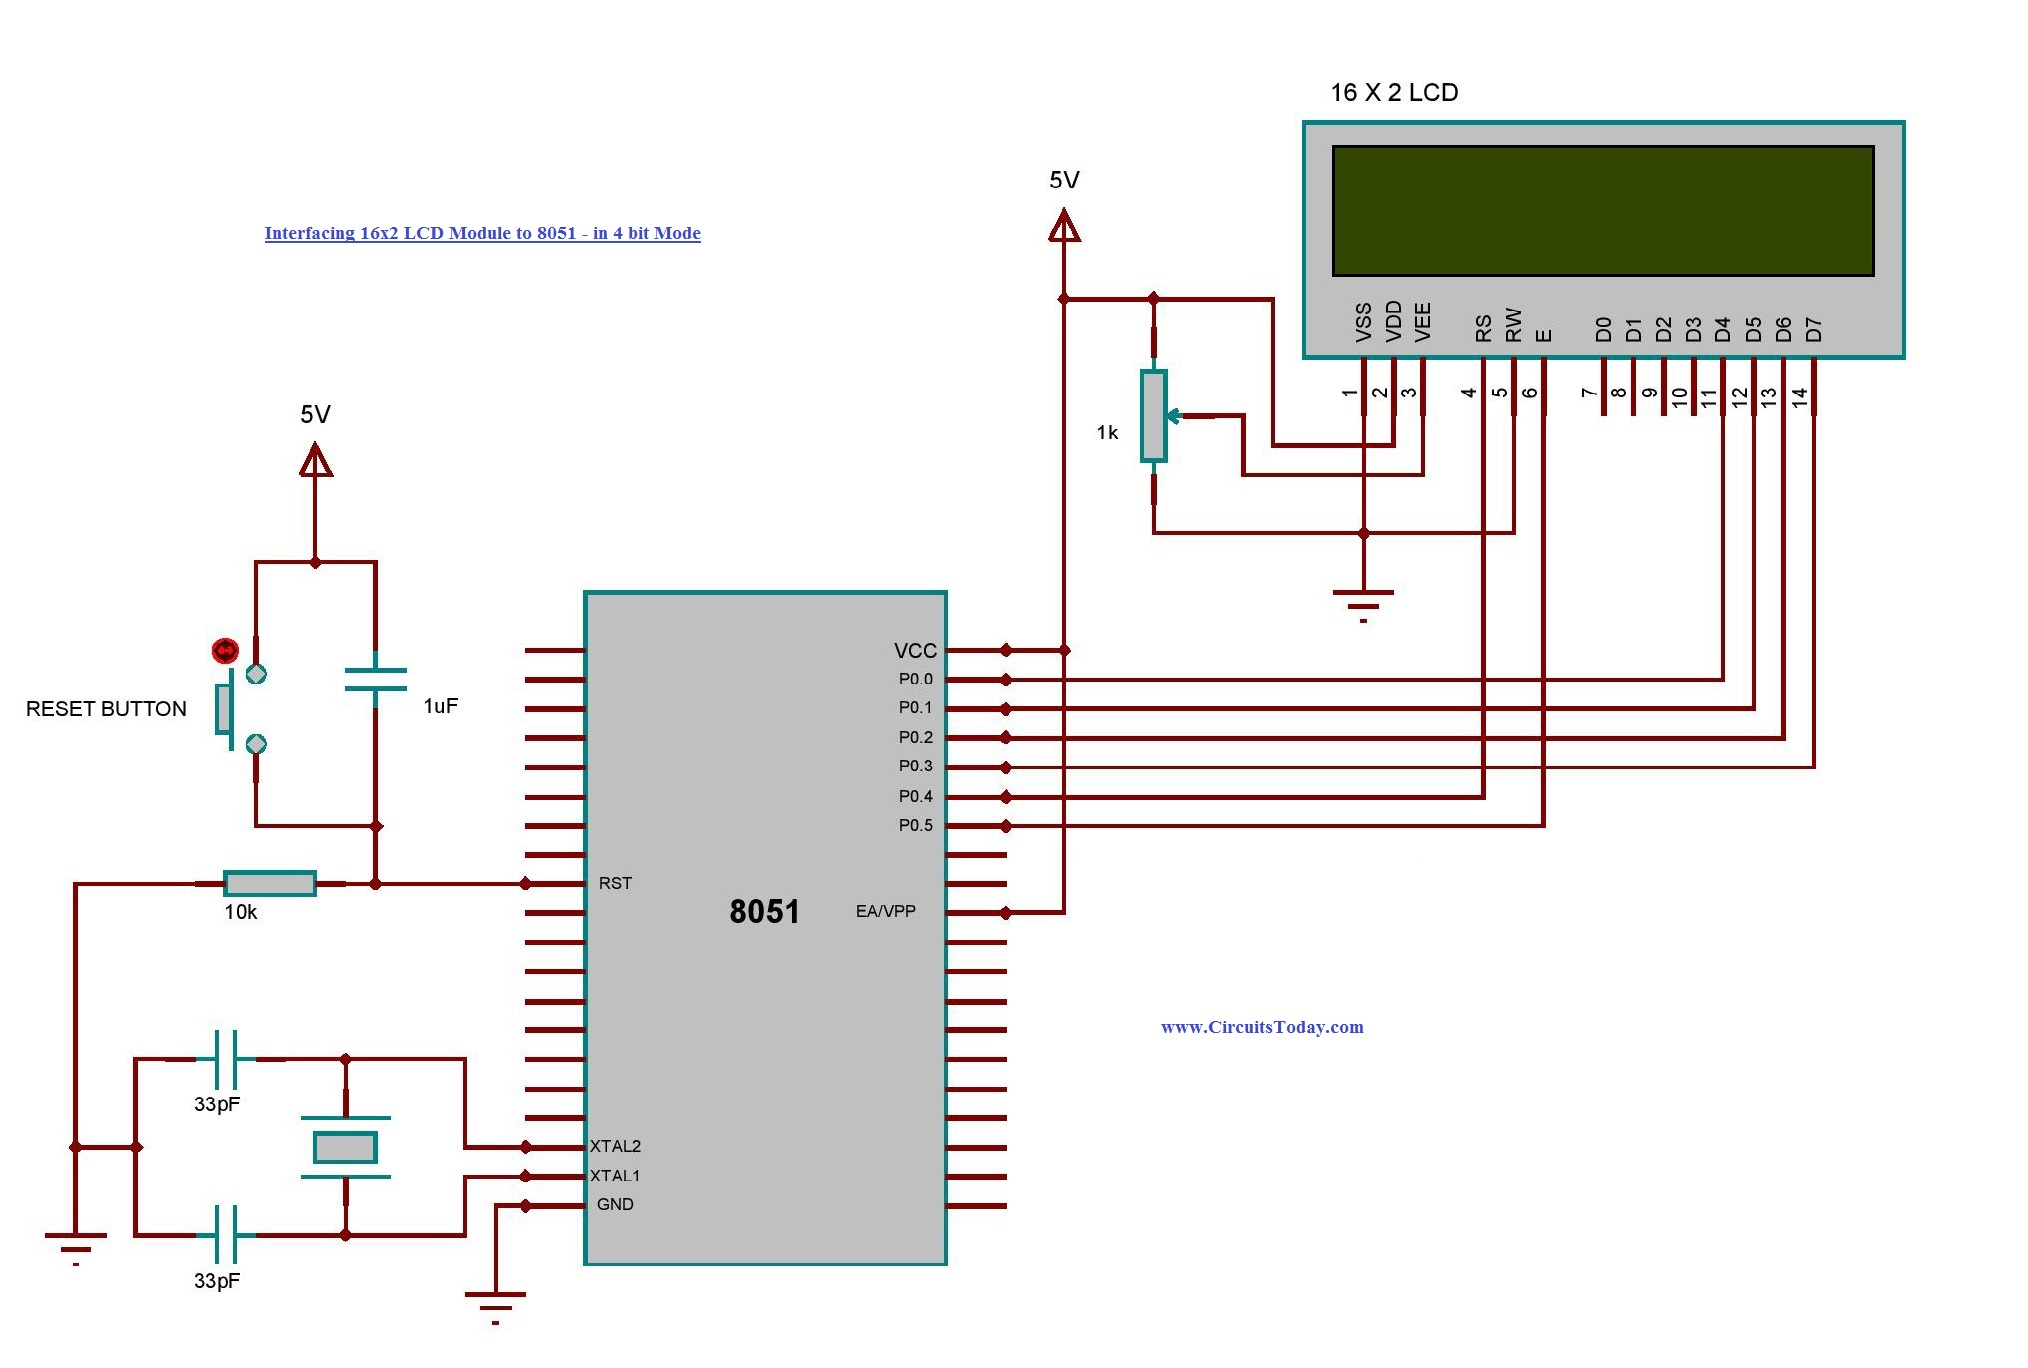 Interfacing 16x2 Lcd With 8051 Microcontroller Module Theory Block Diagram From State Space To In 4 Bit Mode